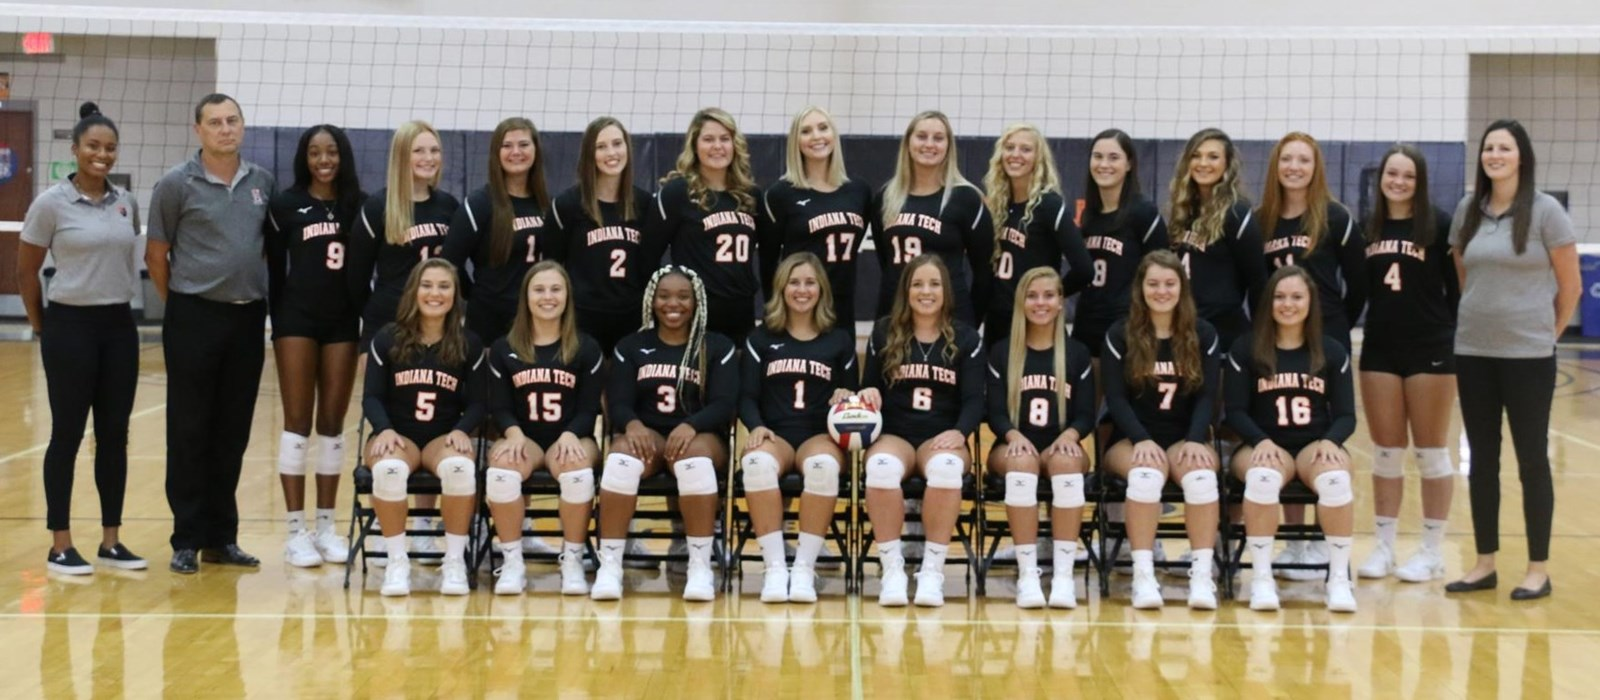 2019 Women S Volleyball Roster Indiana Tech Athletics